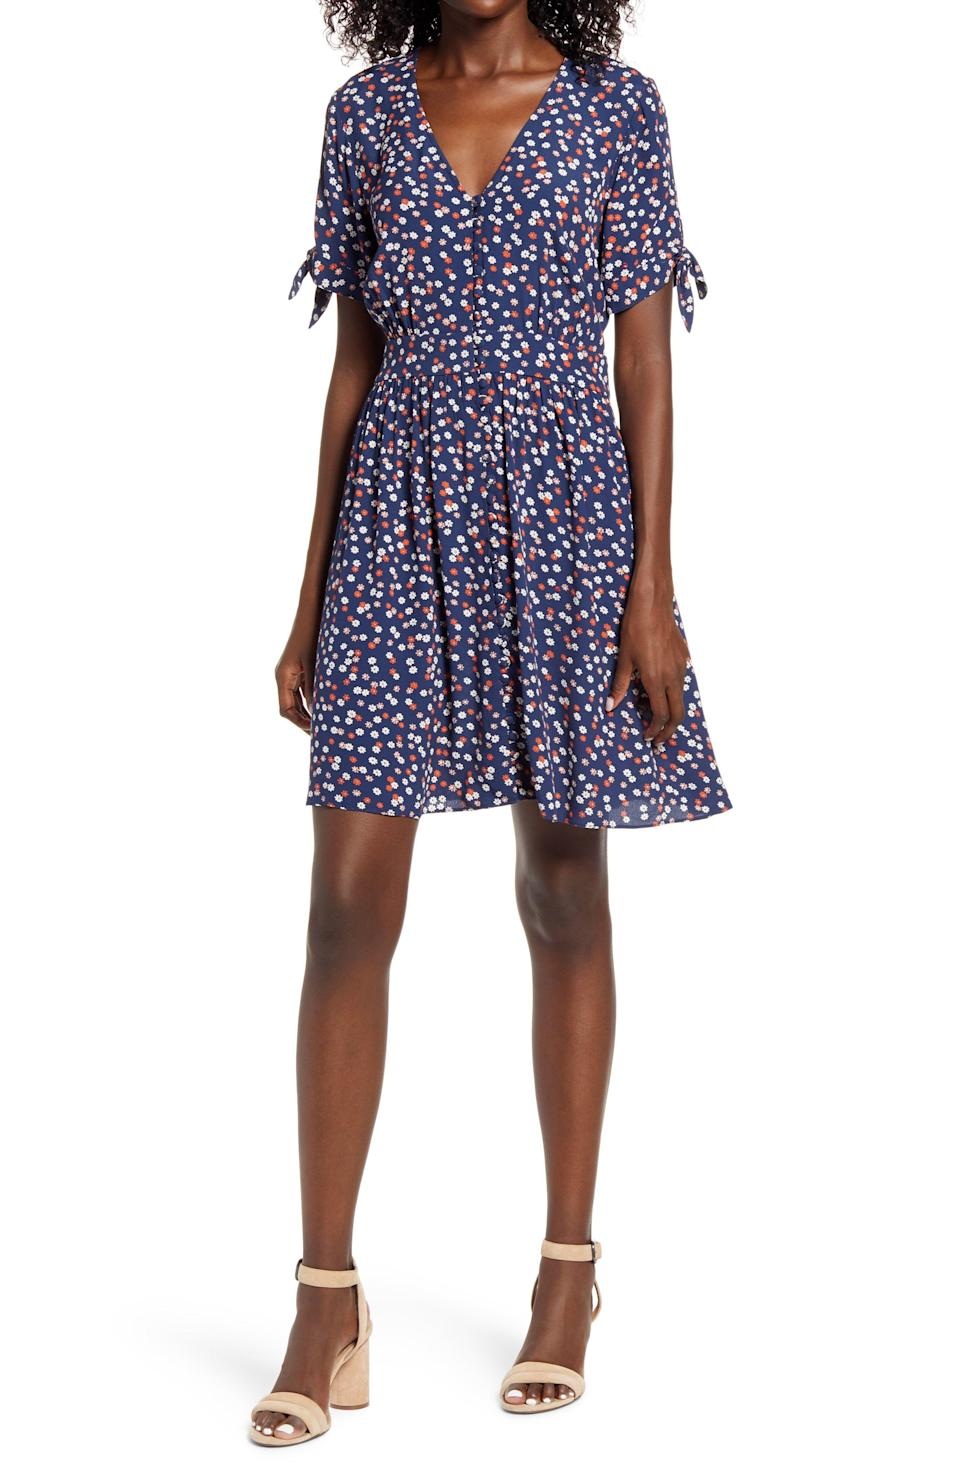 """<p><strong>MADEWELL</strong></p><p>nordstrom.com</p><p><strong>$79.90</strong></p><p><a href=""""https://go.redirectingat.com?id=74968X1596630&url=https%3A%2F%2Fwww.nordstrom.com%2Fs%2Fmadewell-tie-sleeve-button-front-dress-in-mini-daisy%2F5605082&sref=https%3A%2F%2Fwww.townandcountrymag.com%2Fstyle%2Ffashion-trends%2Fg33595537%2Fnordstrom-anniversary-sale-2020-womens-clothing%2F"""" rel=""""nofollow noopener"""" target=""""_blank"""" data-ylk=""""slk:Shop Now"""" class=""""link rapid-noclick-resp"""">Shop Now</a></p><p><em>Originally: $128</em></p>"""